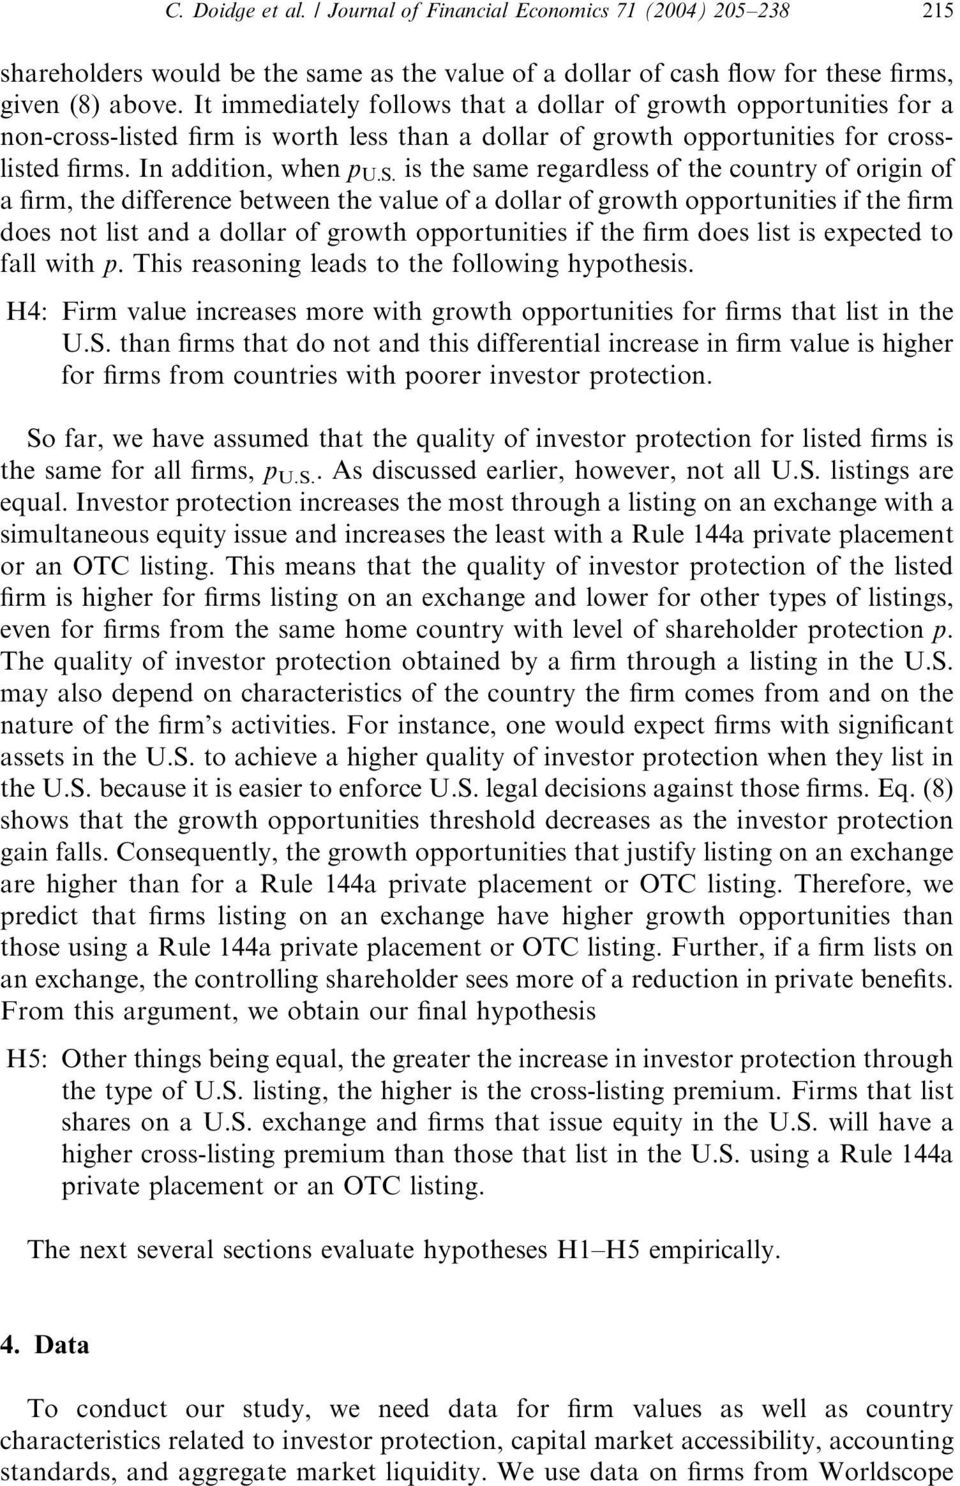 In addition, when p U:S: is the same regardless of the country of origin of a firm, the difference between the value of a dollar of growth opportunities if the firm does not list and a dollar of